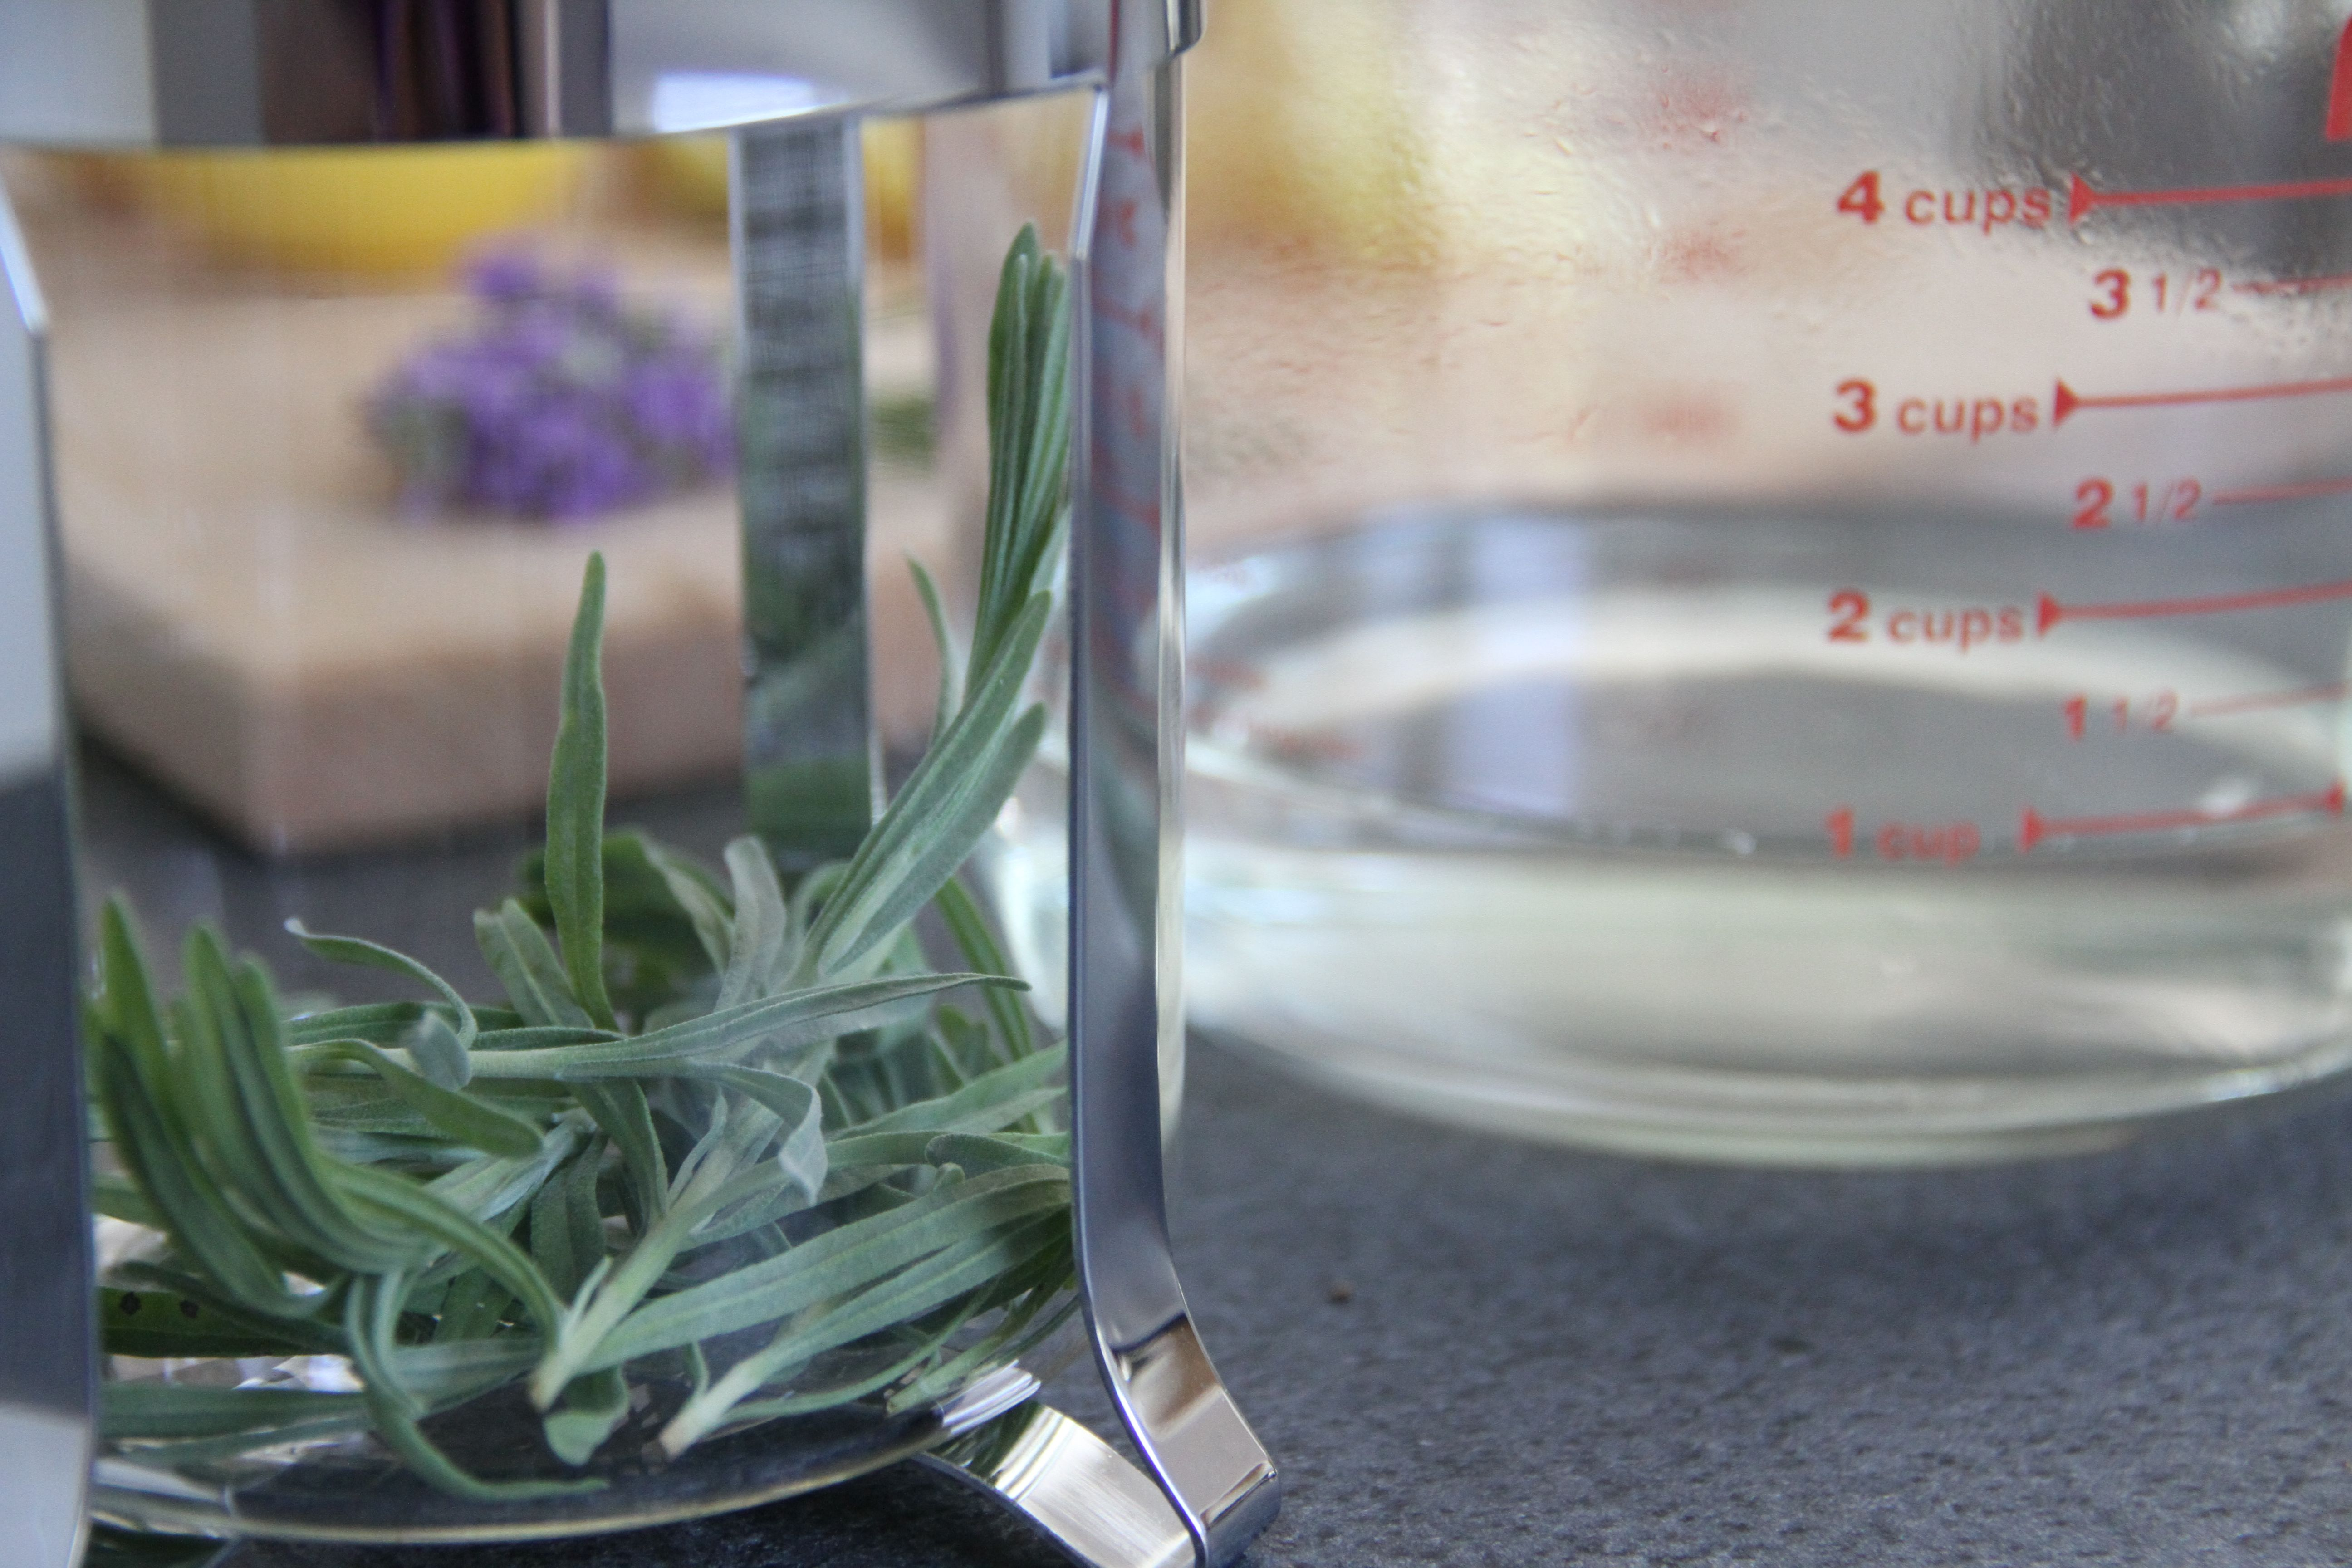 I used a french press to steep the lavender, but you can use a measuring cup by itself.